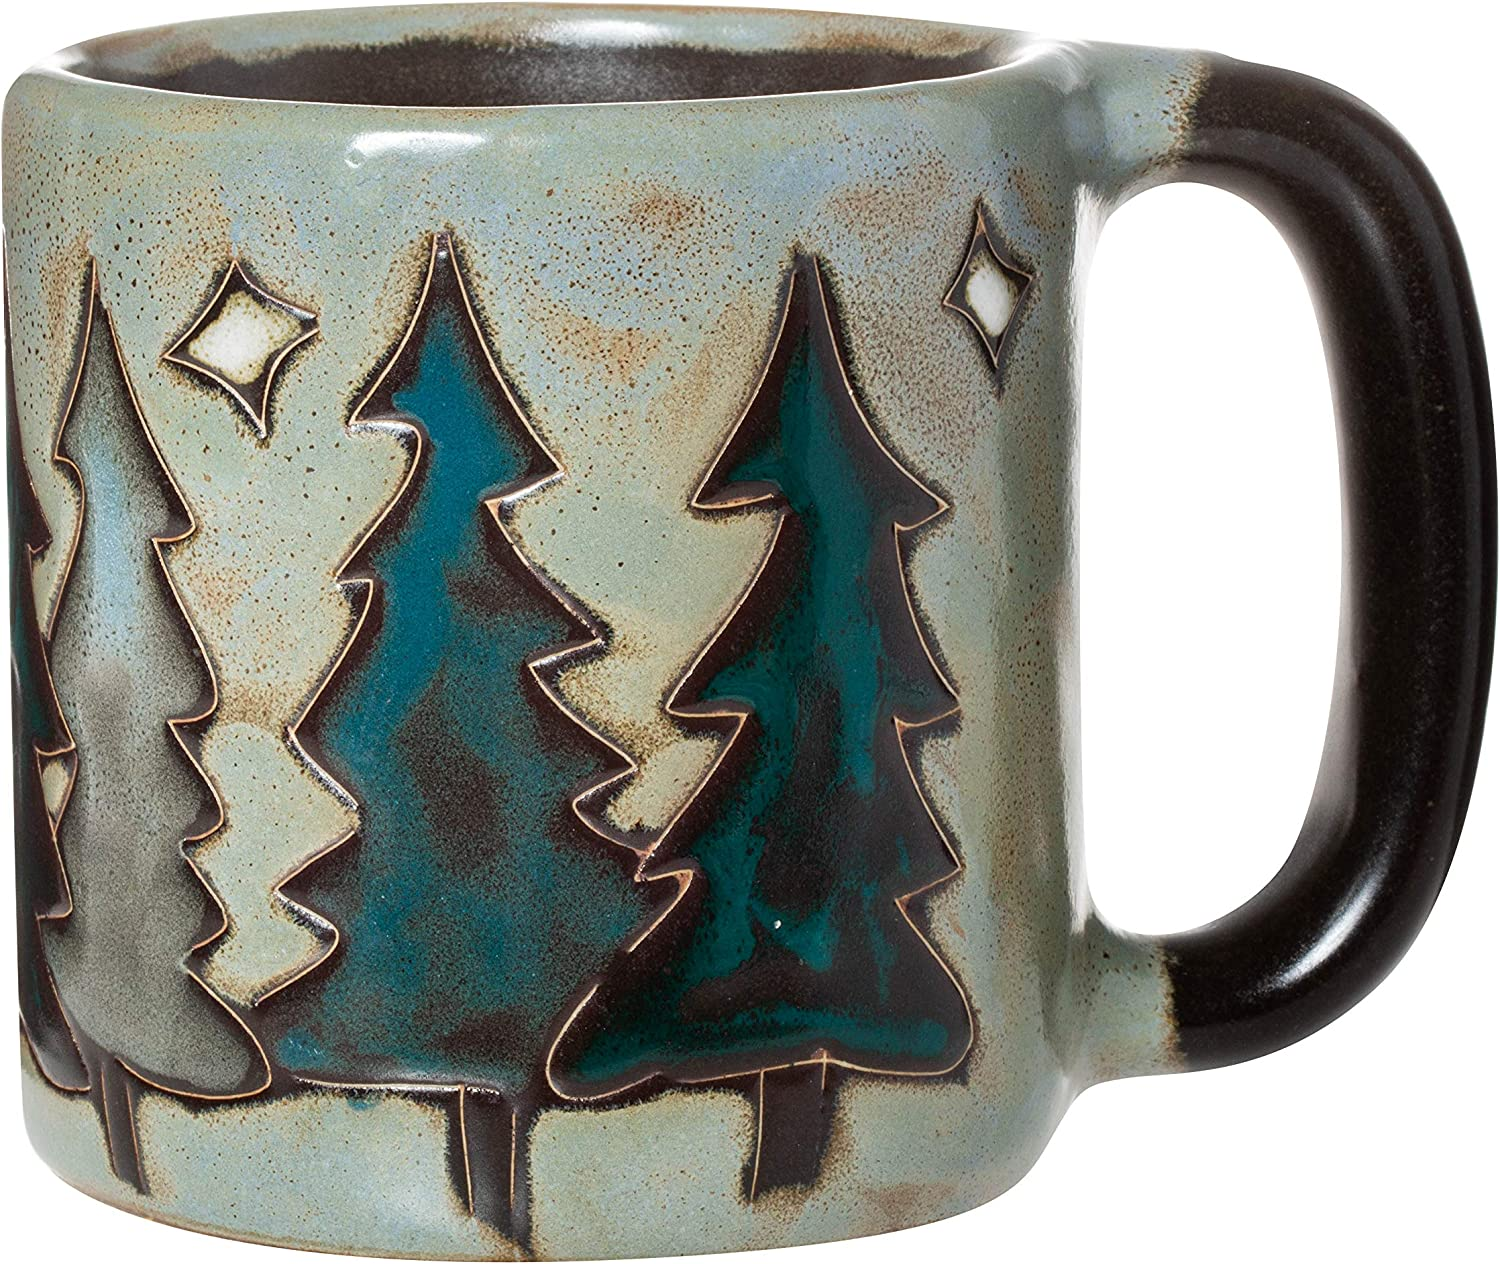 One (1) MARA STONEWARE COLLECTION - 16 Ounce Coffee Cup Collectible Dinner Mug - Pine Trees Design